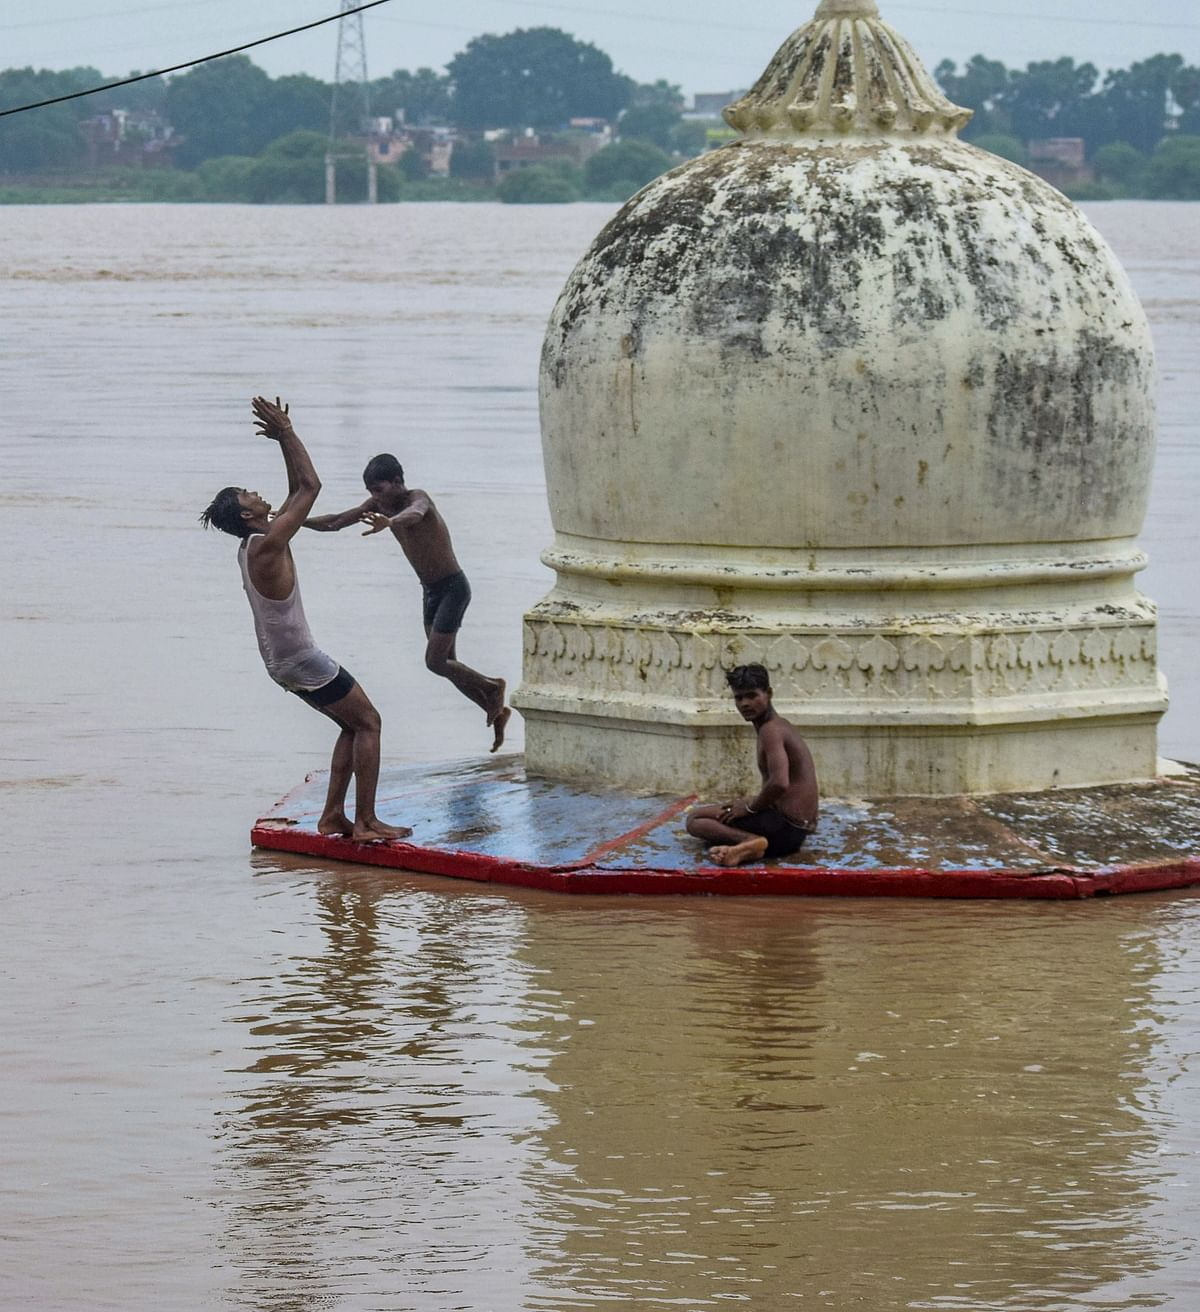 Youths jump into the floodwater at a flood-hit area following the rise in Ganga River due to monsoon rainfall, in Prayagraj.